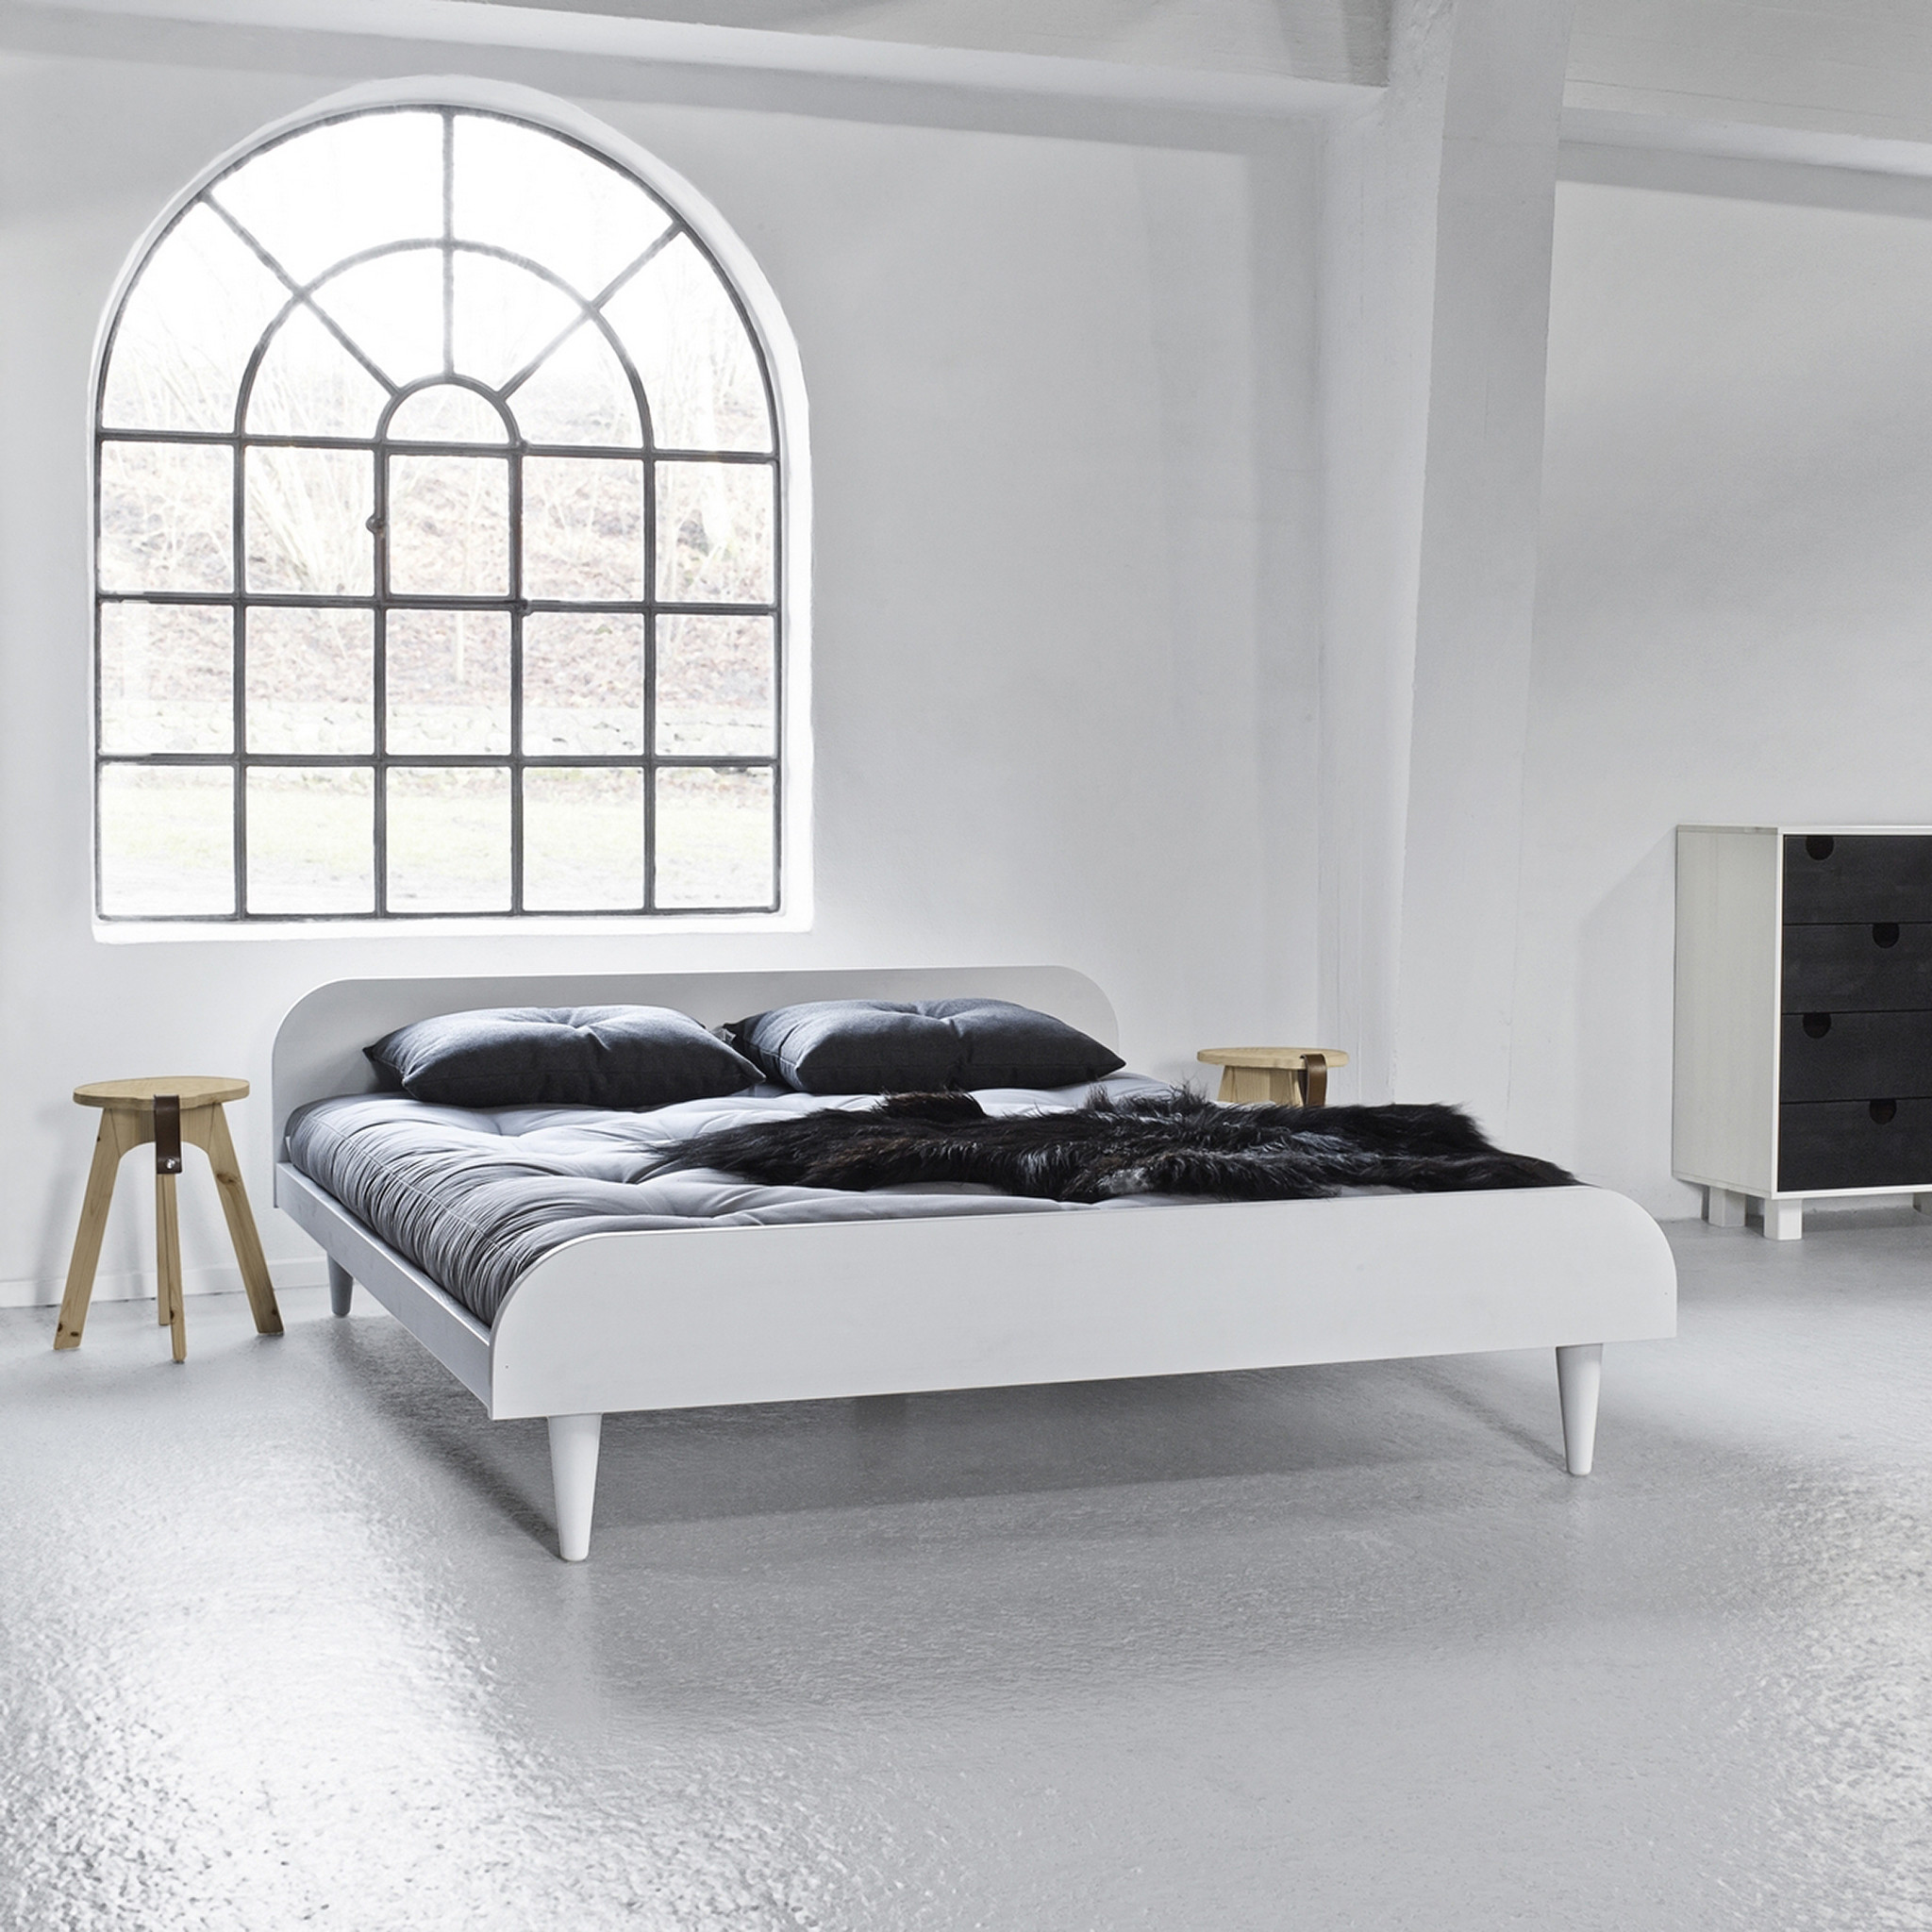 Pack futon latex gris clair + lit twist bois blanc